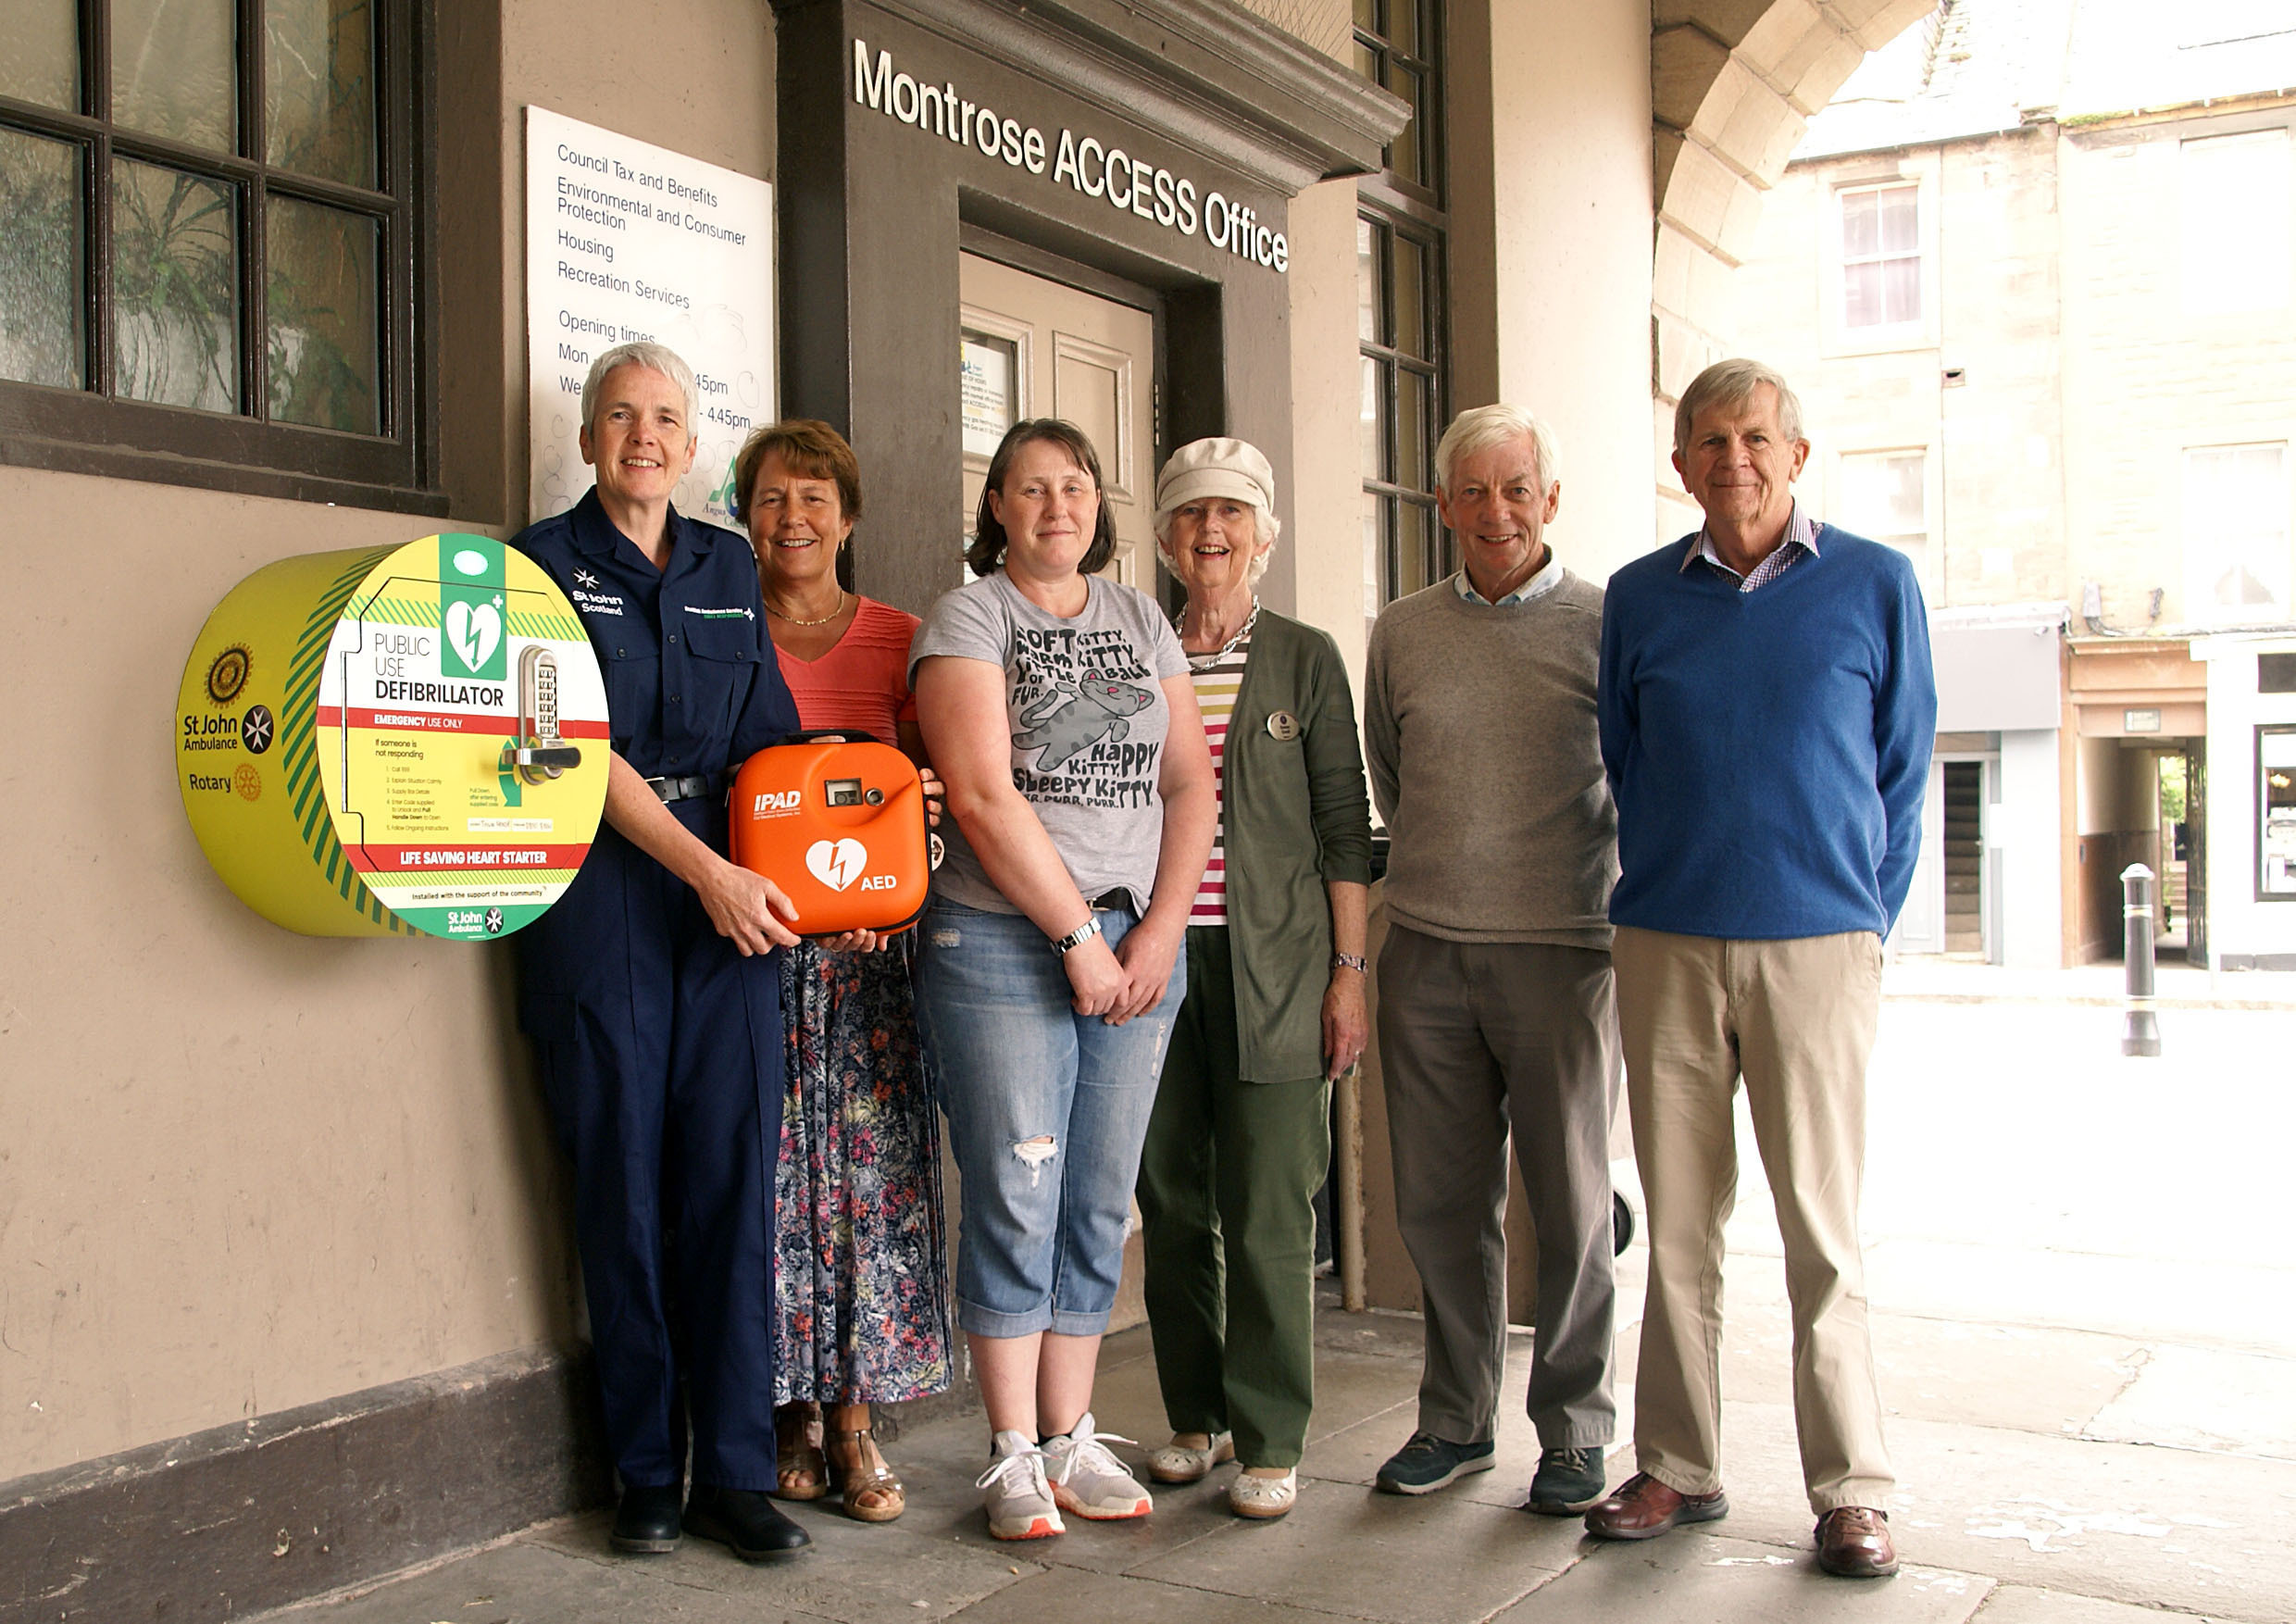 Left to right, Melanie Cargill (First Responder), Helen Griffith, Tracy Park, Susan Coull, David May, David Milne (Montrose Rotary and Inner Wheel members).